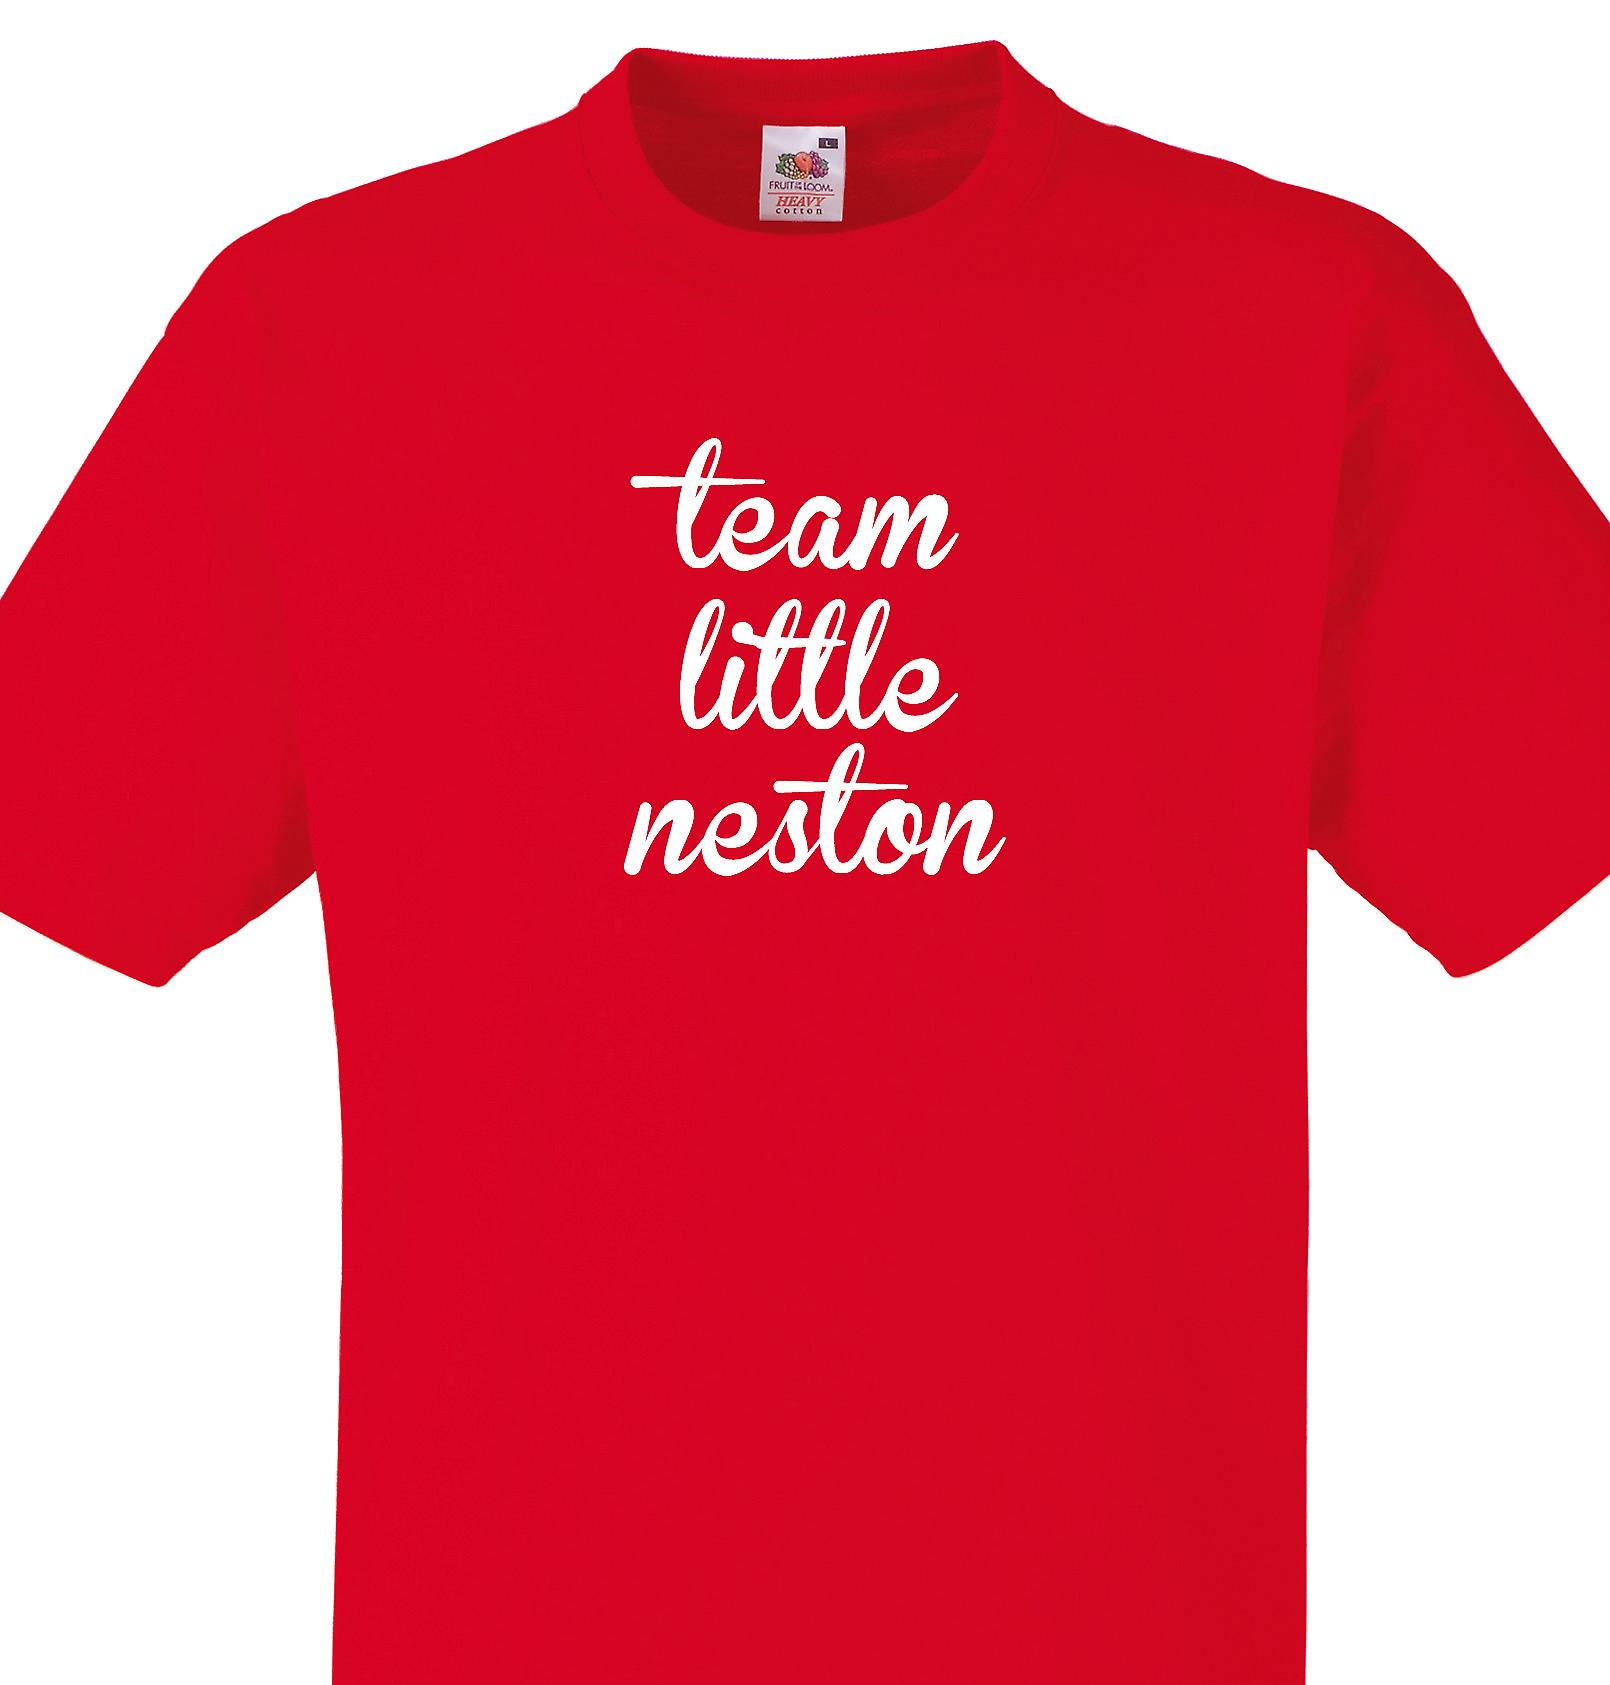 Team Little neston Red T shirt